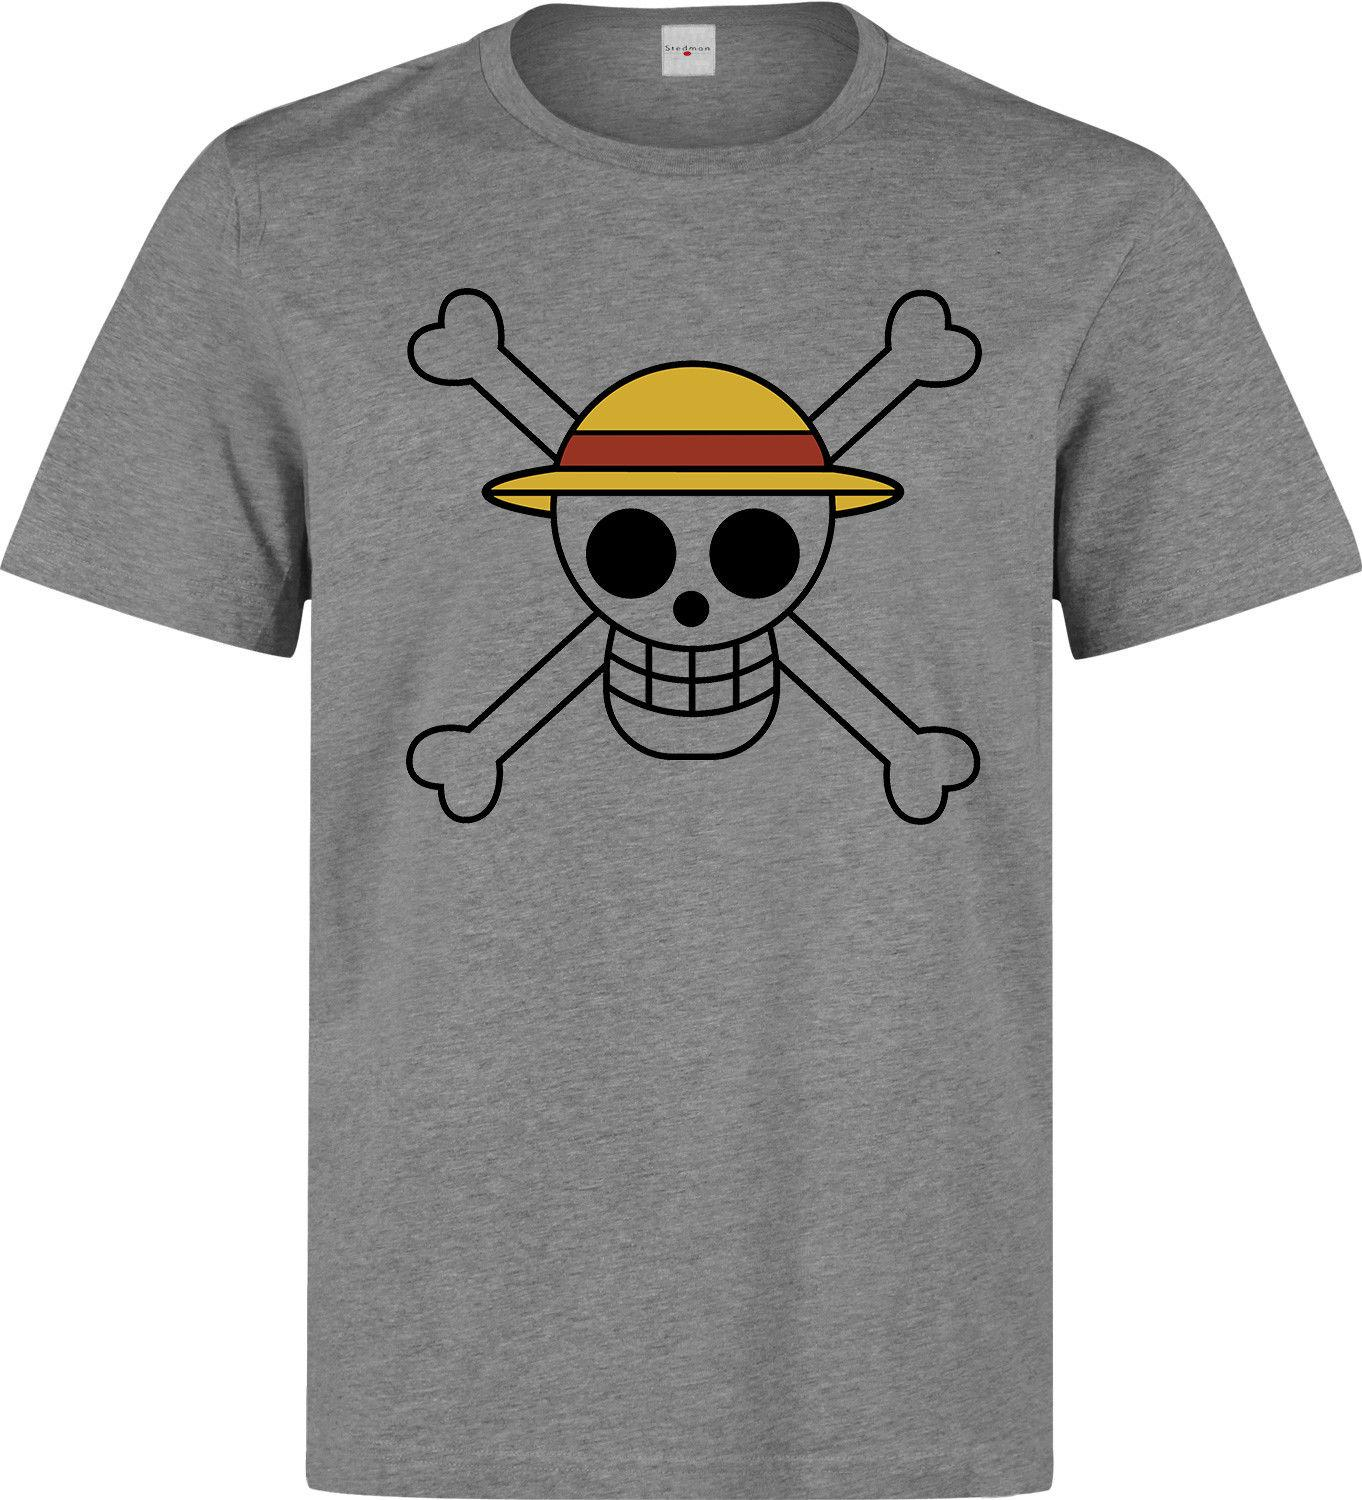 74b2408d One Piece Straw Hat Luffy Flag Anime Manga Japan Men's Grey T Shirt Hot  Selling 100 % Cotton Tee Shirts Top Tee